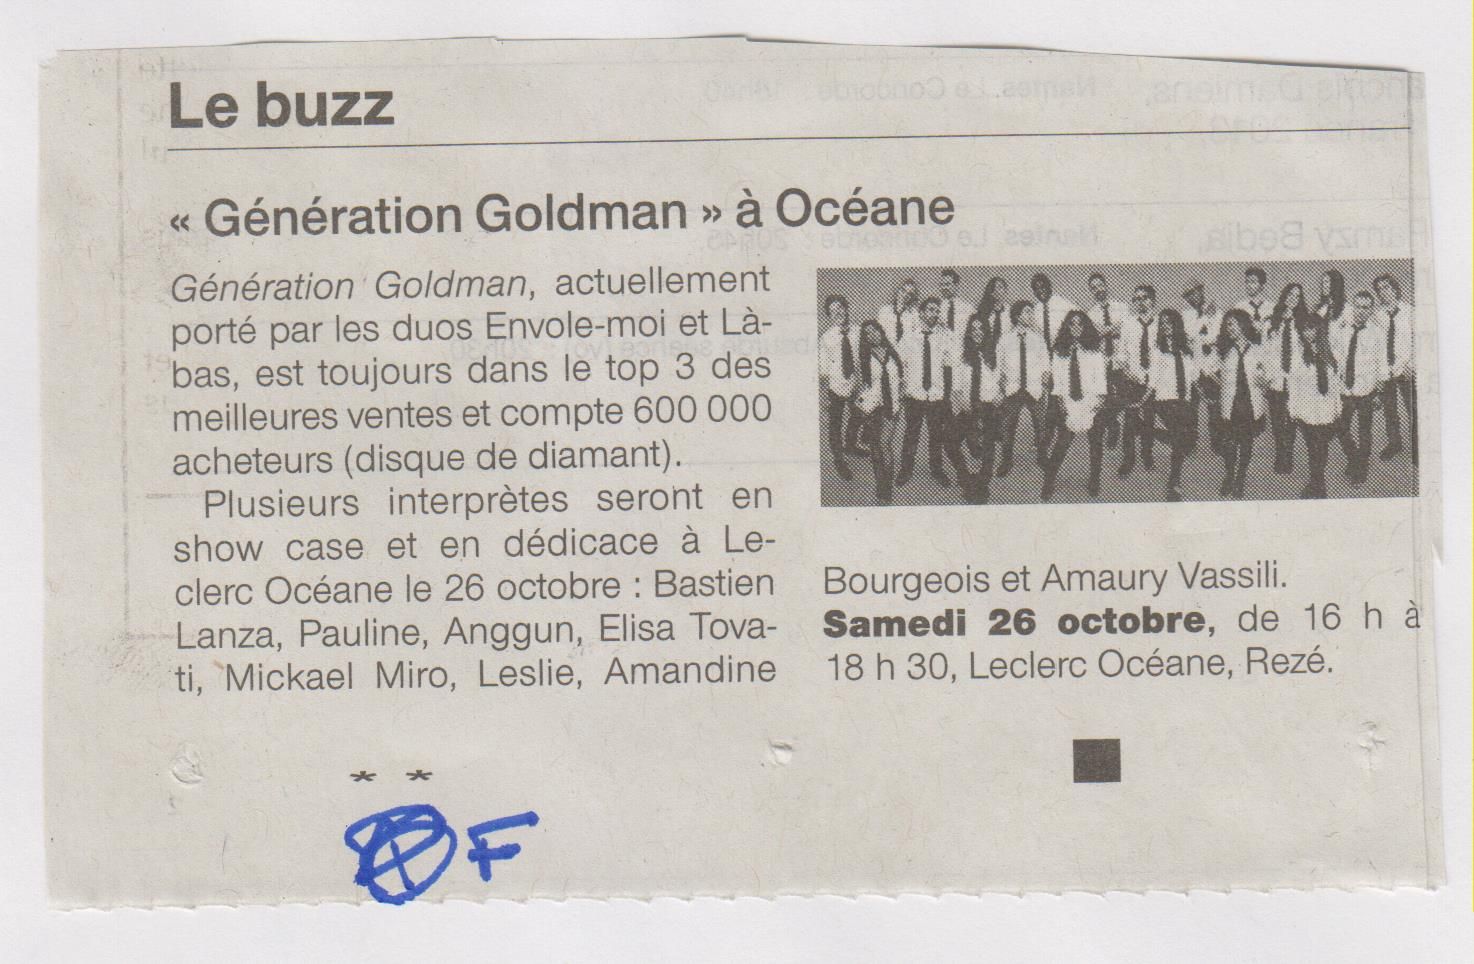 17.10.2013 - OUEST FRANCE GENERATION GOLDMAN 2